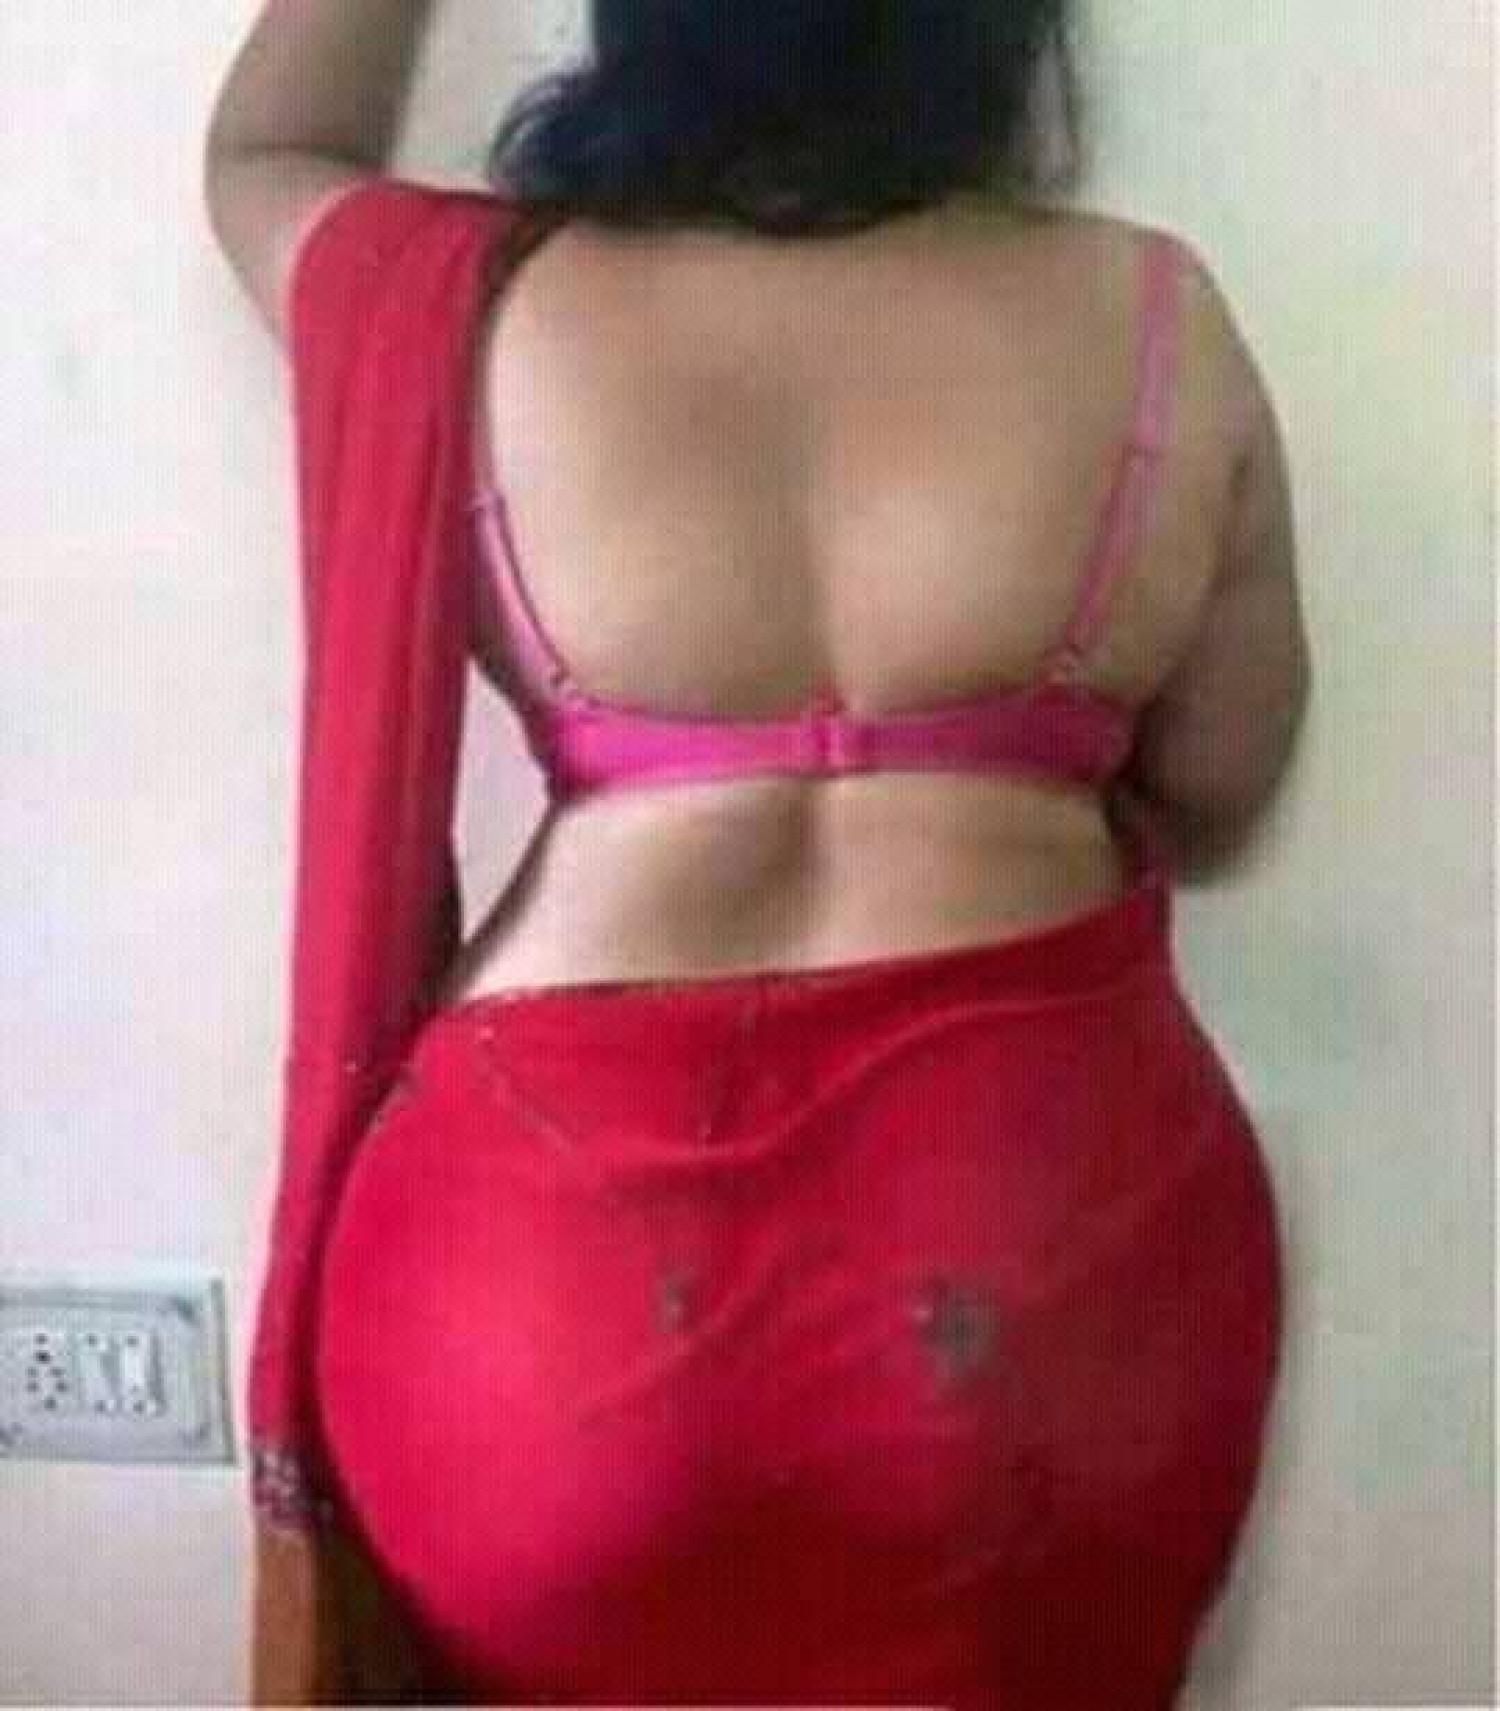 Sneha Call Girl in Delhi, mature and seductive lady available for you. Infographic